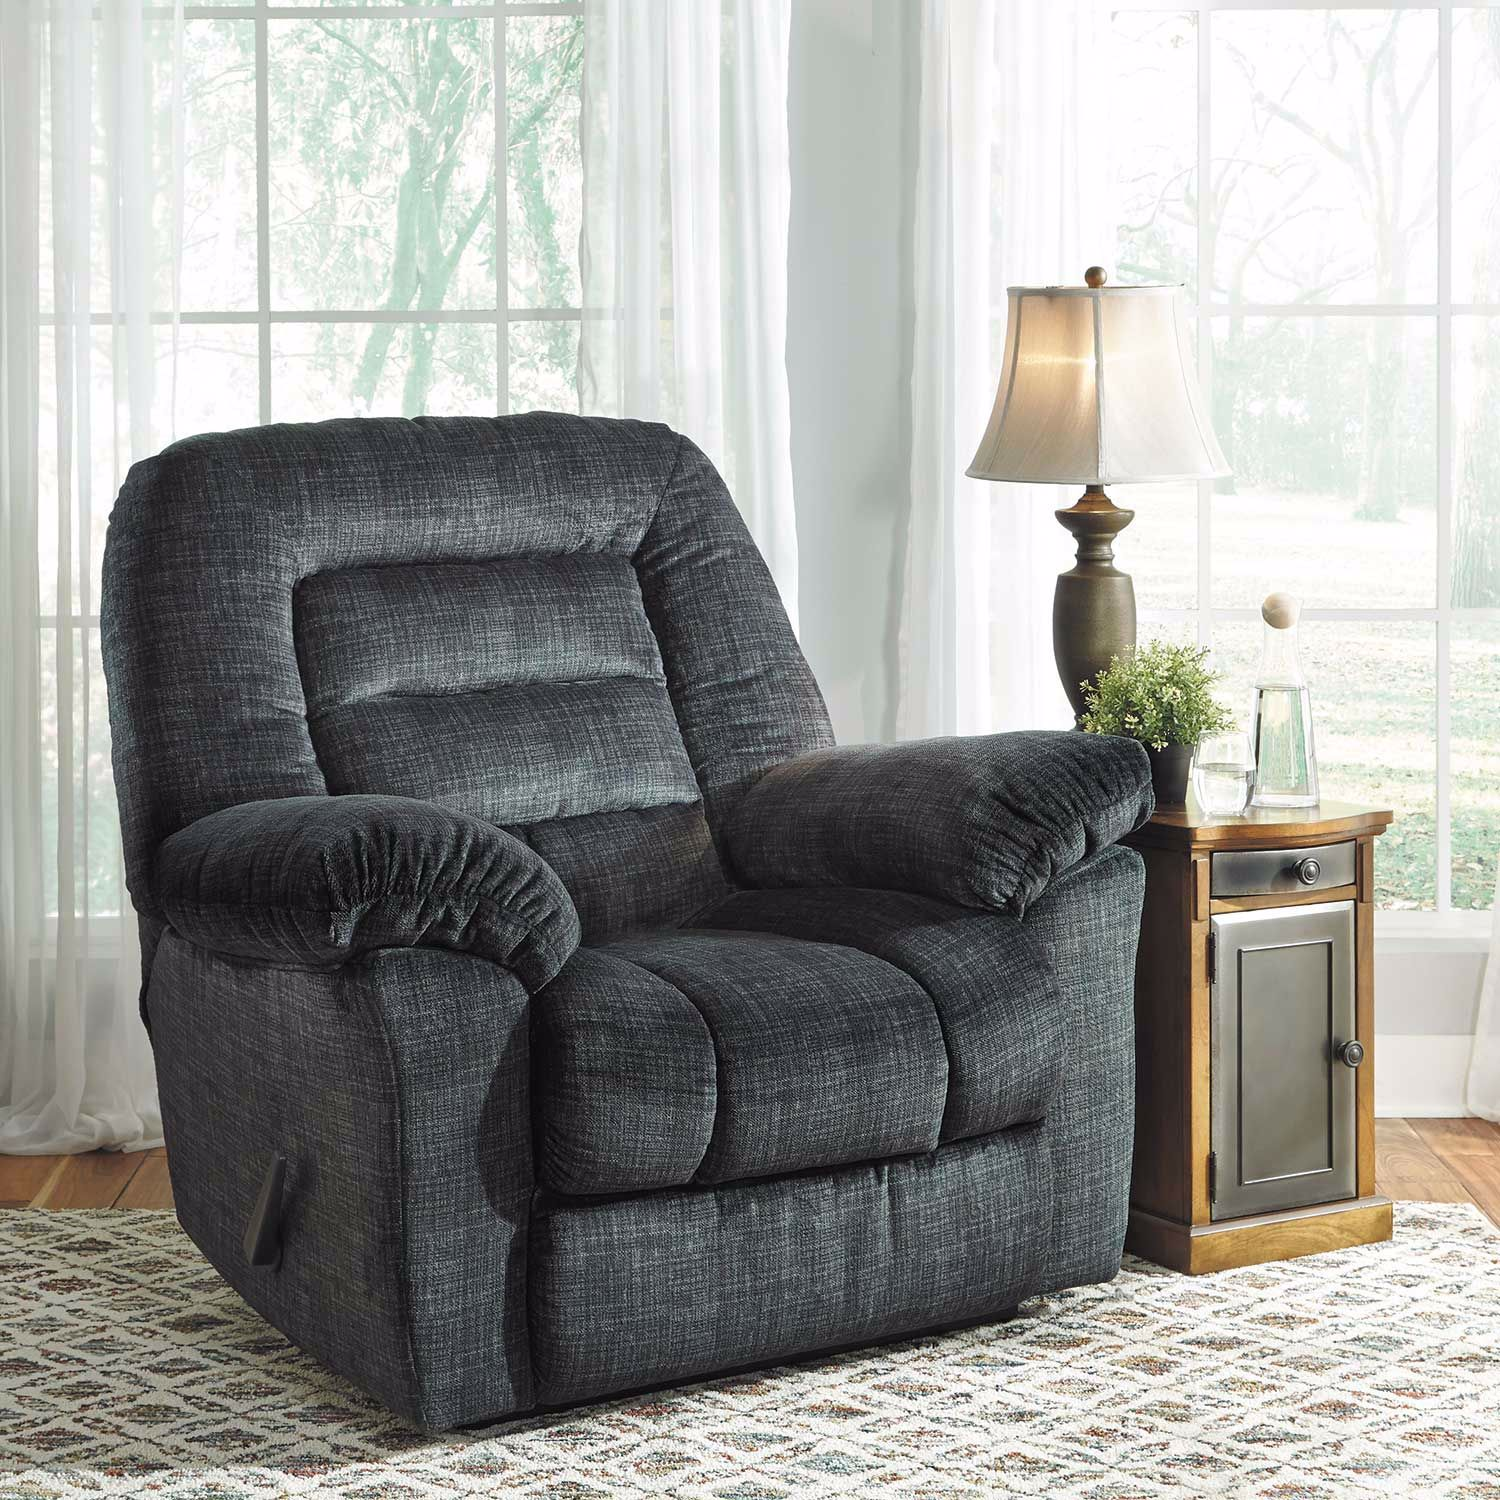 Picture of Hengen Thunder Wall Saver Recliner